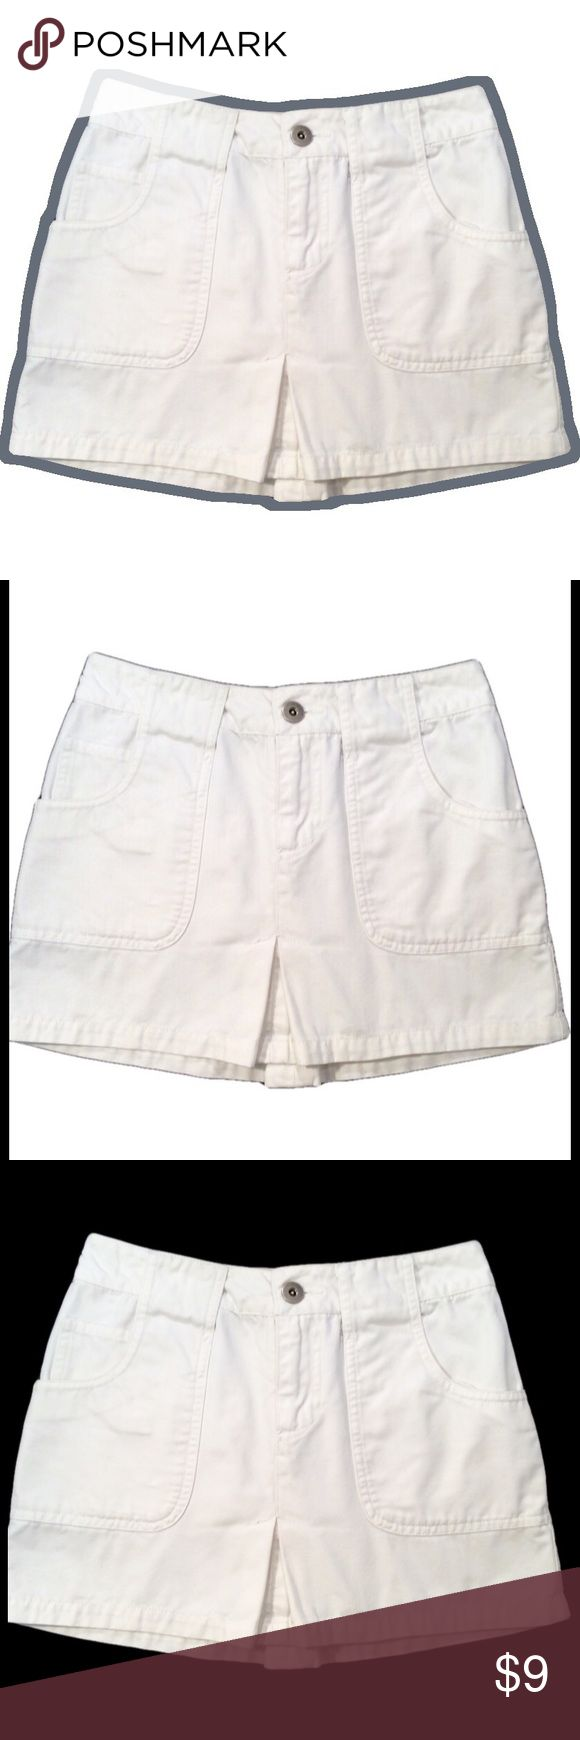 """Mossimo White Mini Skirt Mossimo white mini skirt. Size 1. 100% cotton. Approx. 12""""L. Mossimo Supply Co Skirts Mini"""